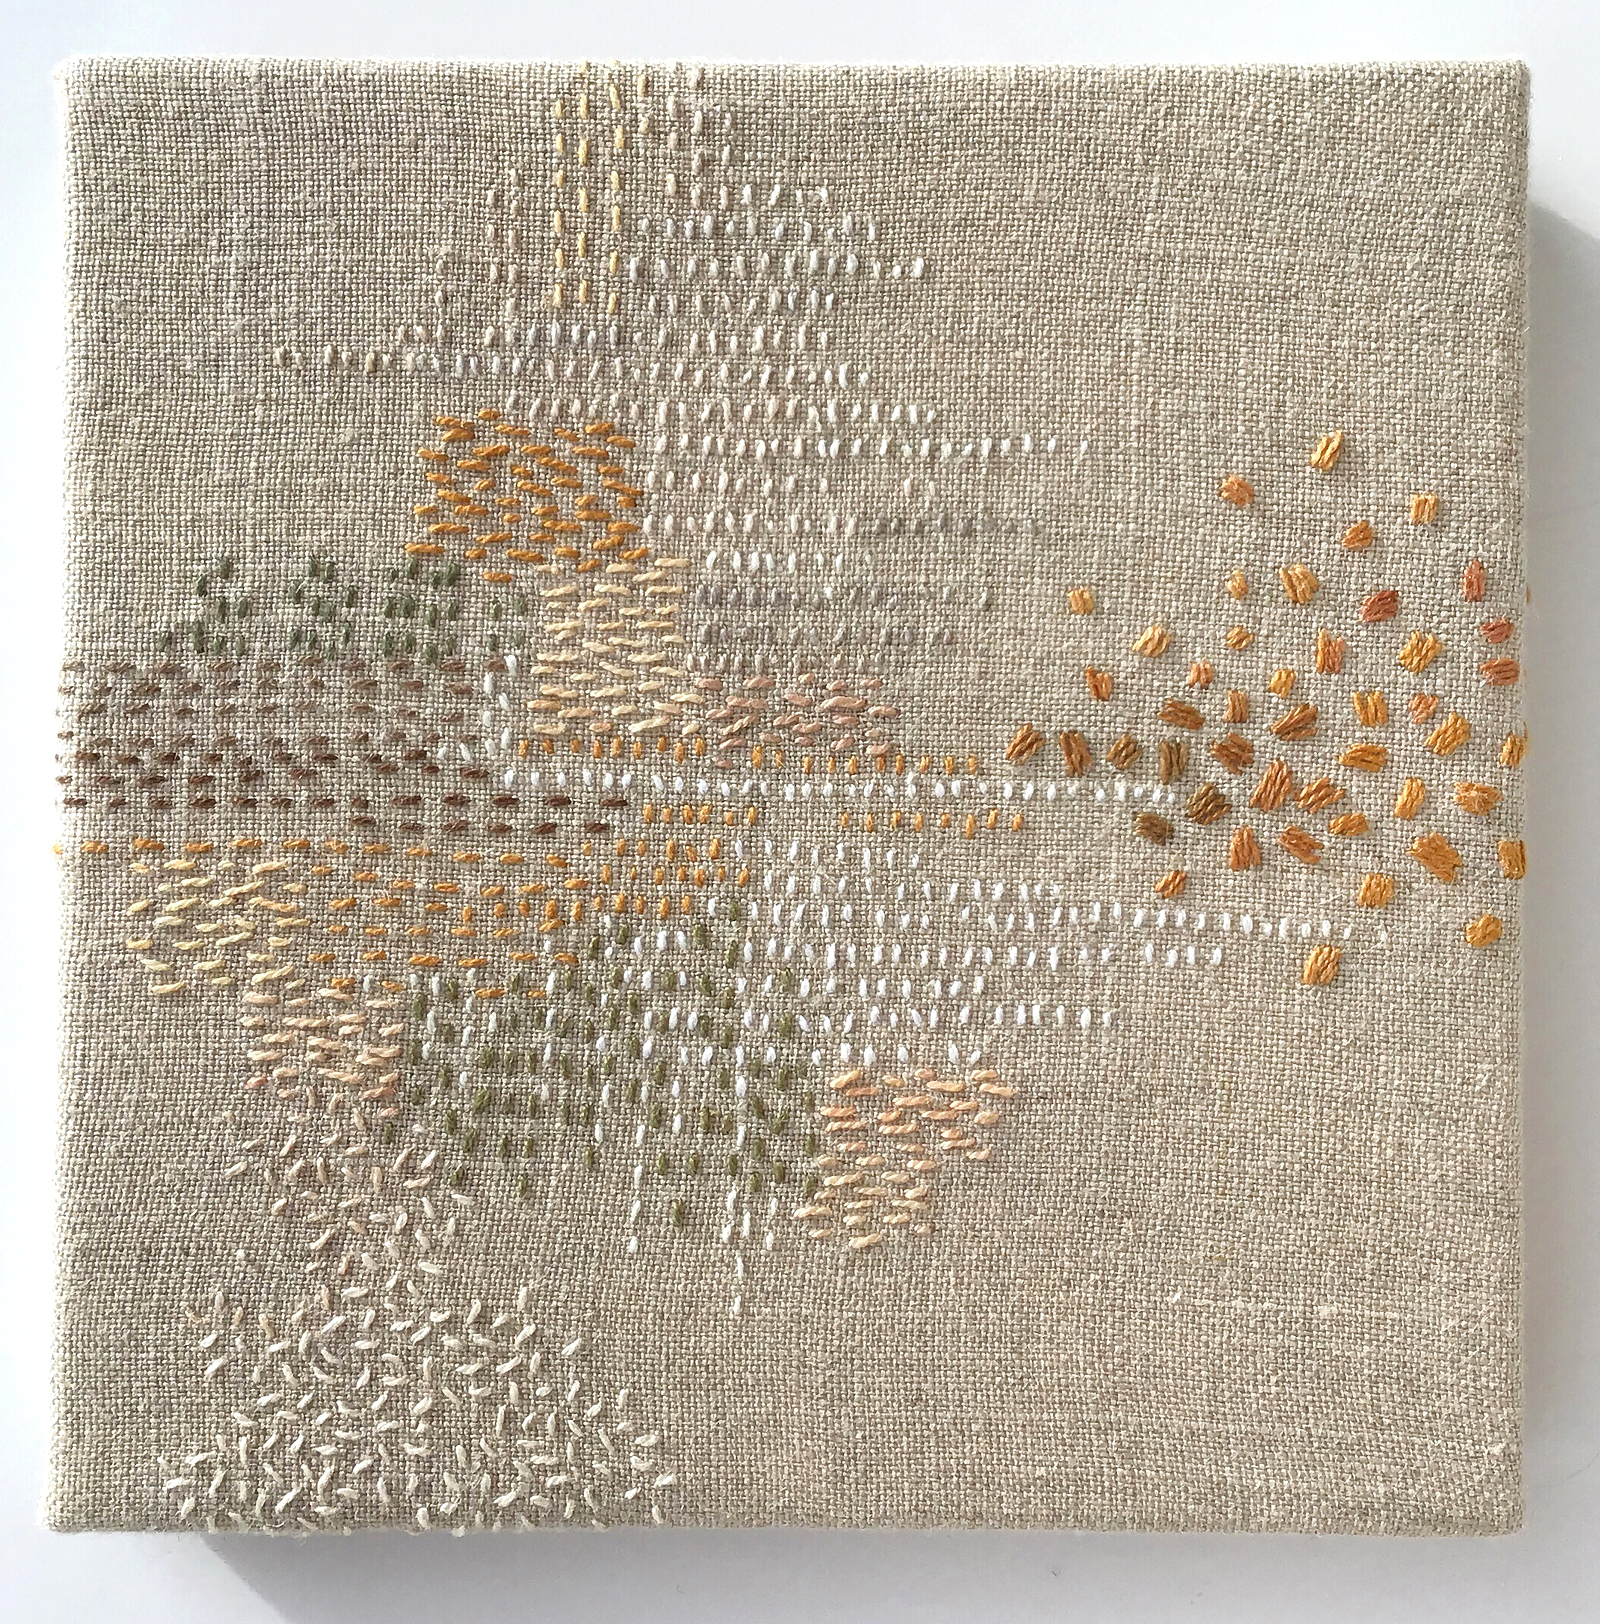 Stitch Journal 2019, No. 1 (Earth), 2019, pearl cotton and linen, 6 x 6 inches